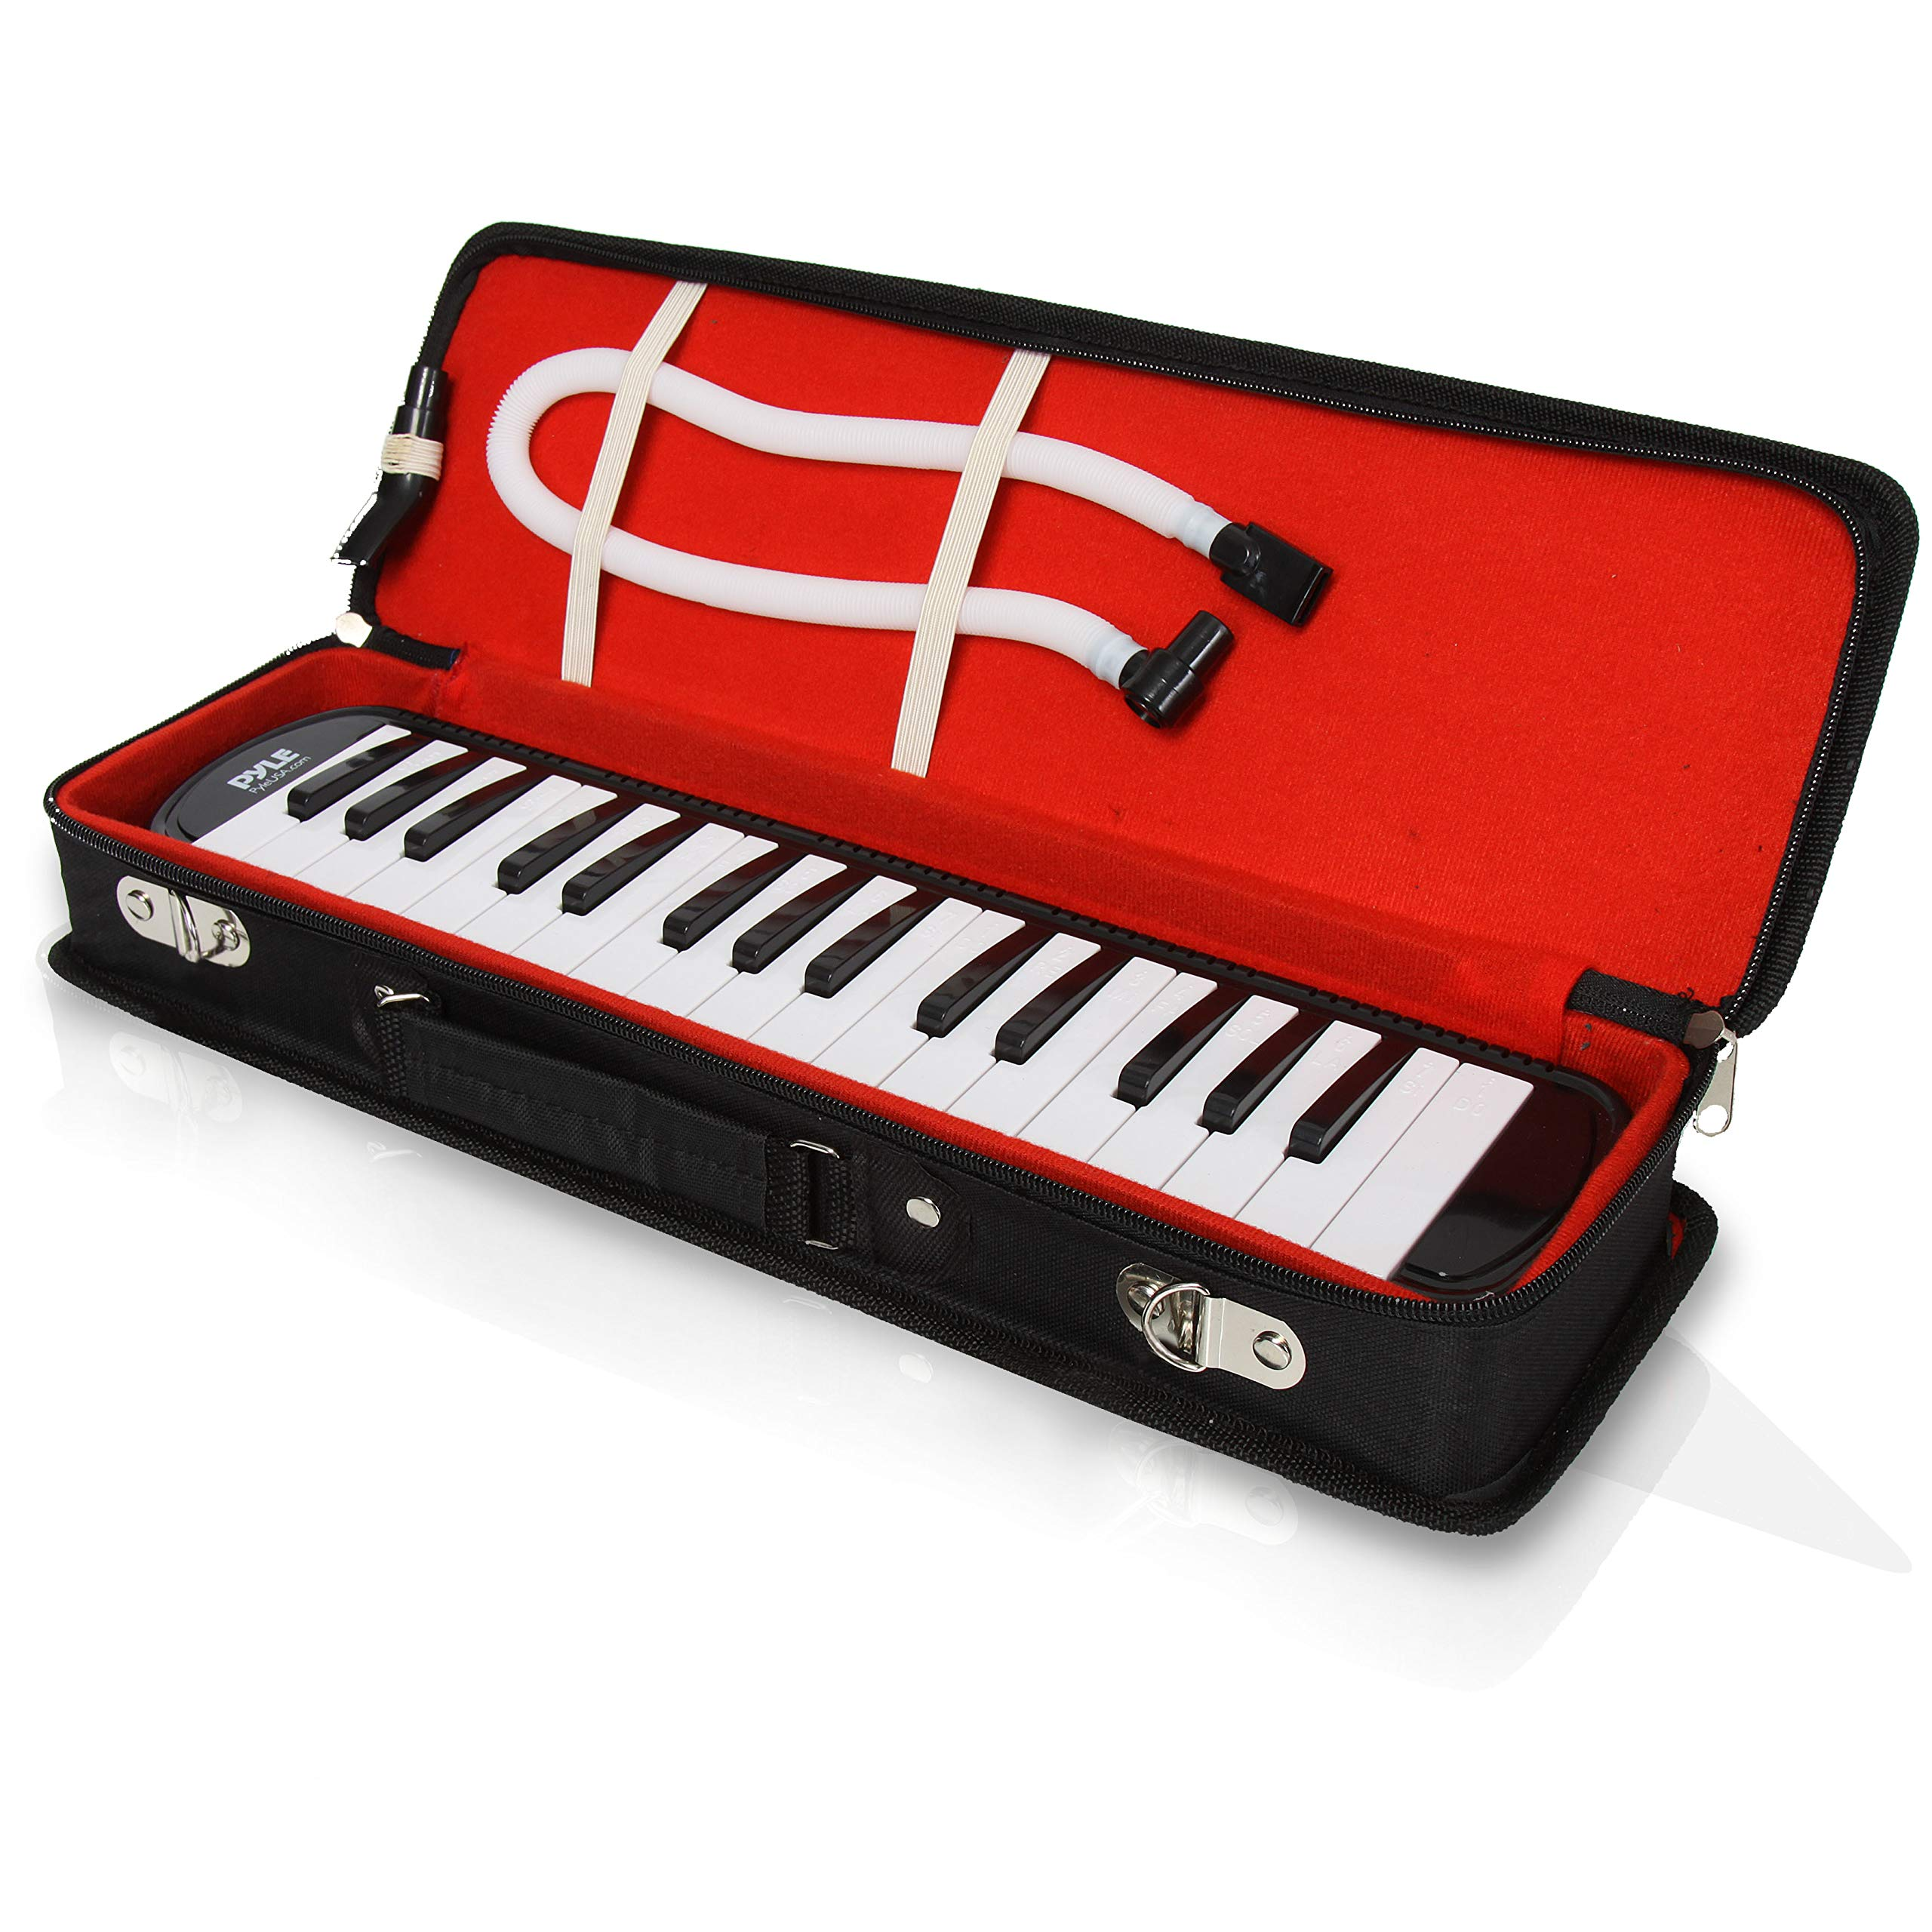 Professional Mouth Piano Melodica Instrument - Mouth Keyboard Piano Organ Melodica Set w/Mouthpiece, Tube Accessories, for Beginner or Band - Pyle (Black) by Pyle (Image #2)